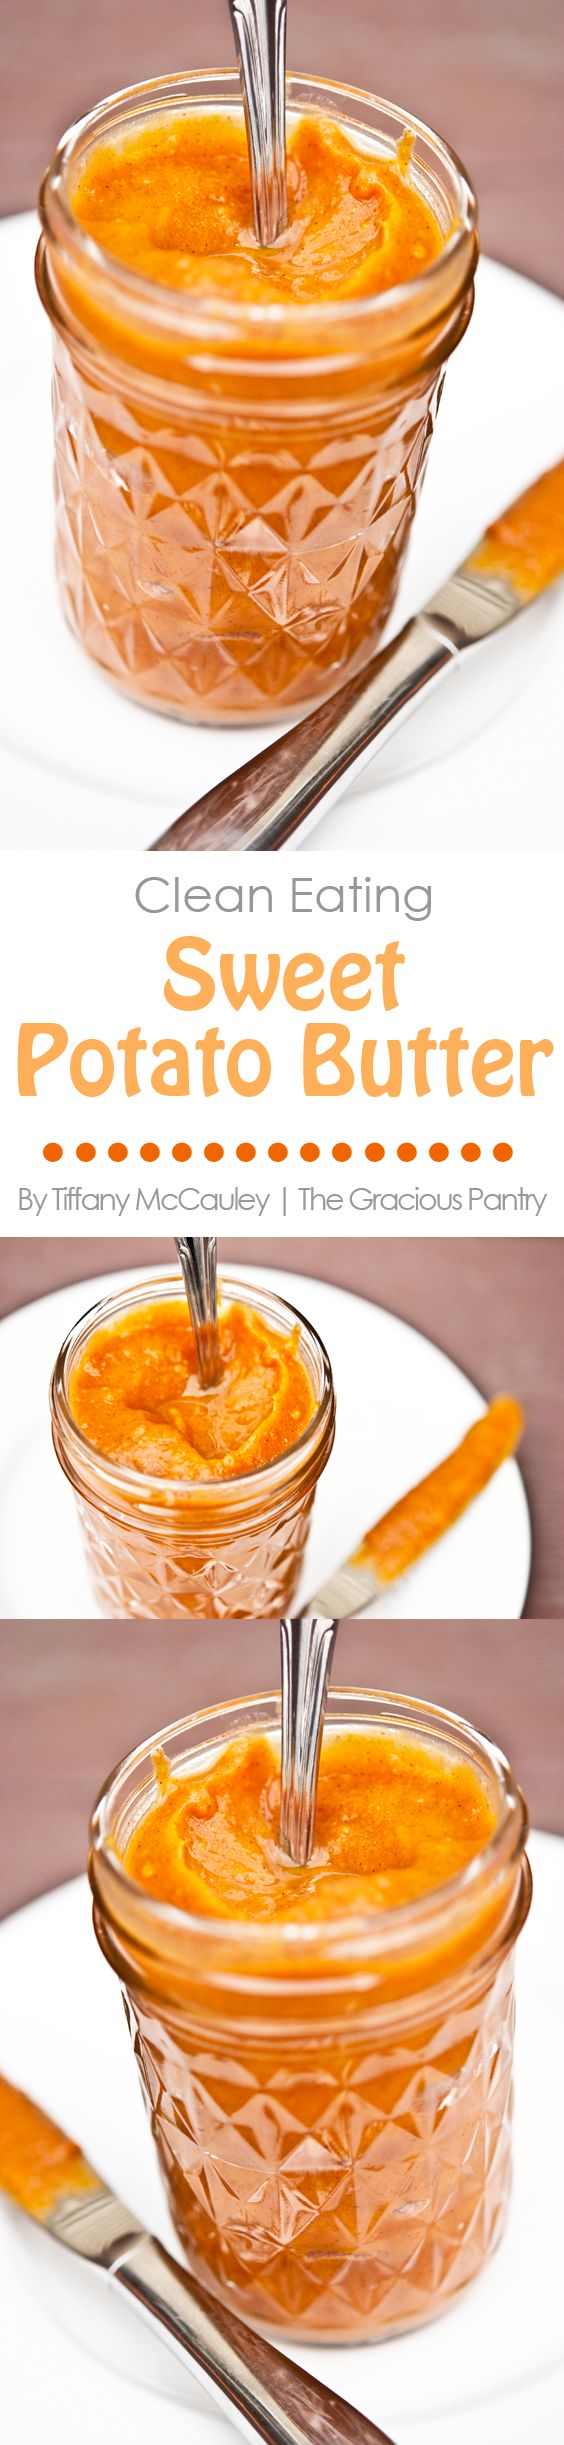 This wonderful sweet potato spread is perfect on morning toast or over waffles or pancakes! Makes a great, sweet dip for crackers too!